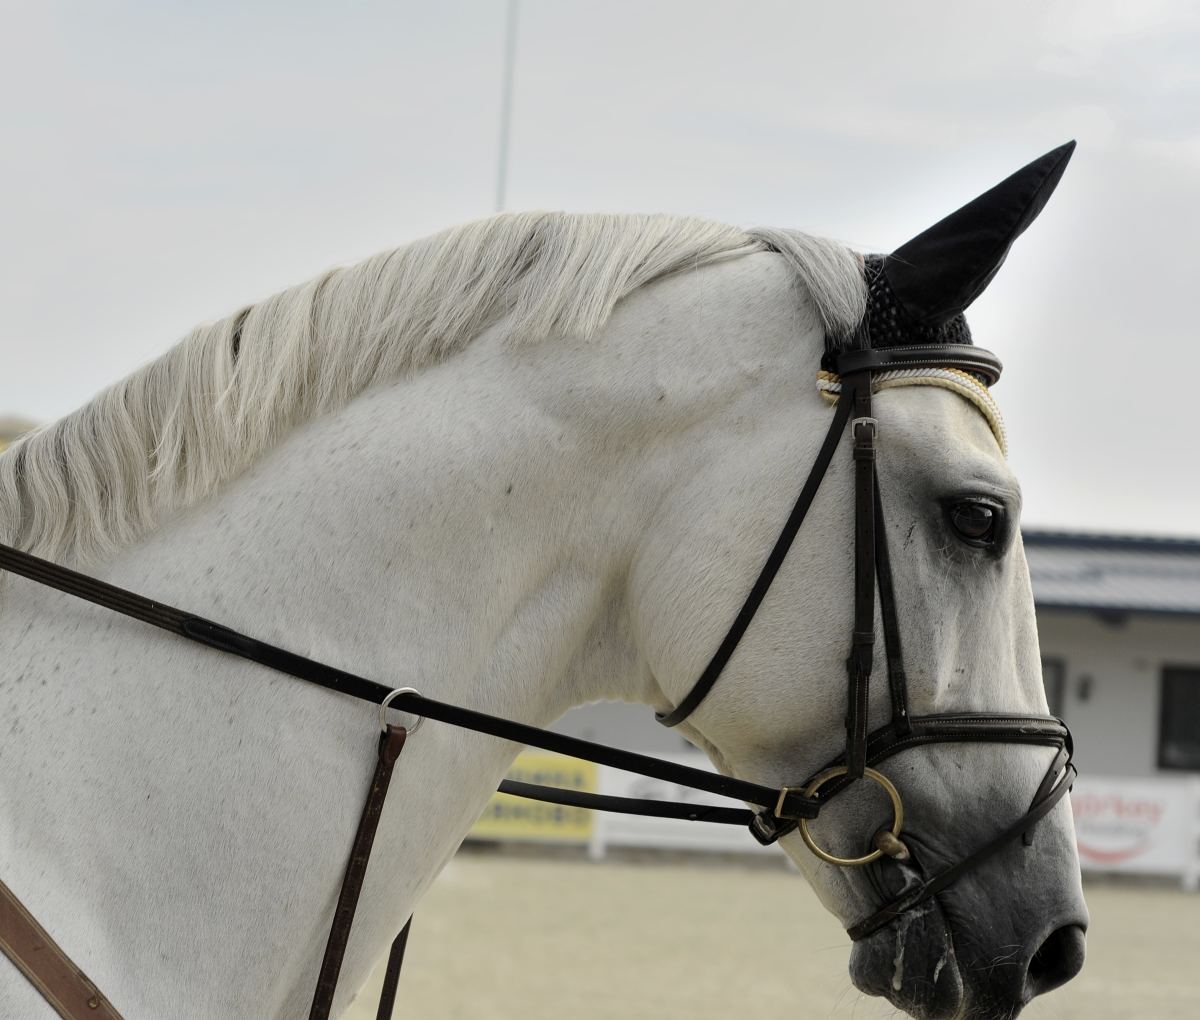 One can see from the side why a bridle may be tricky to put on for some unruly horses.